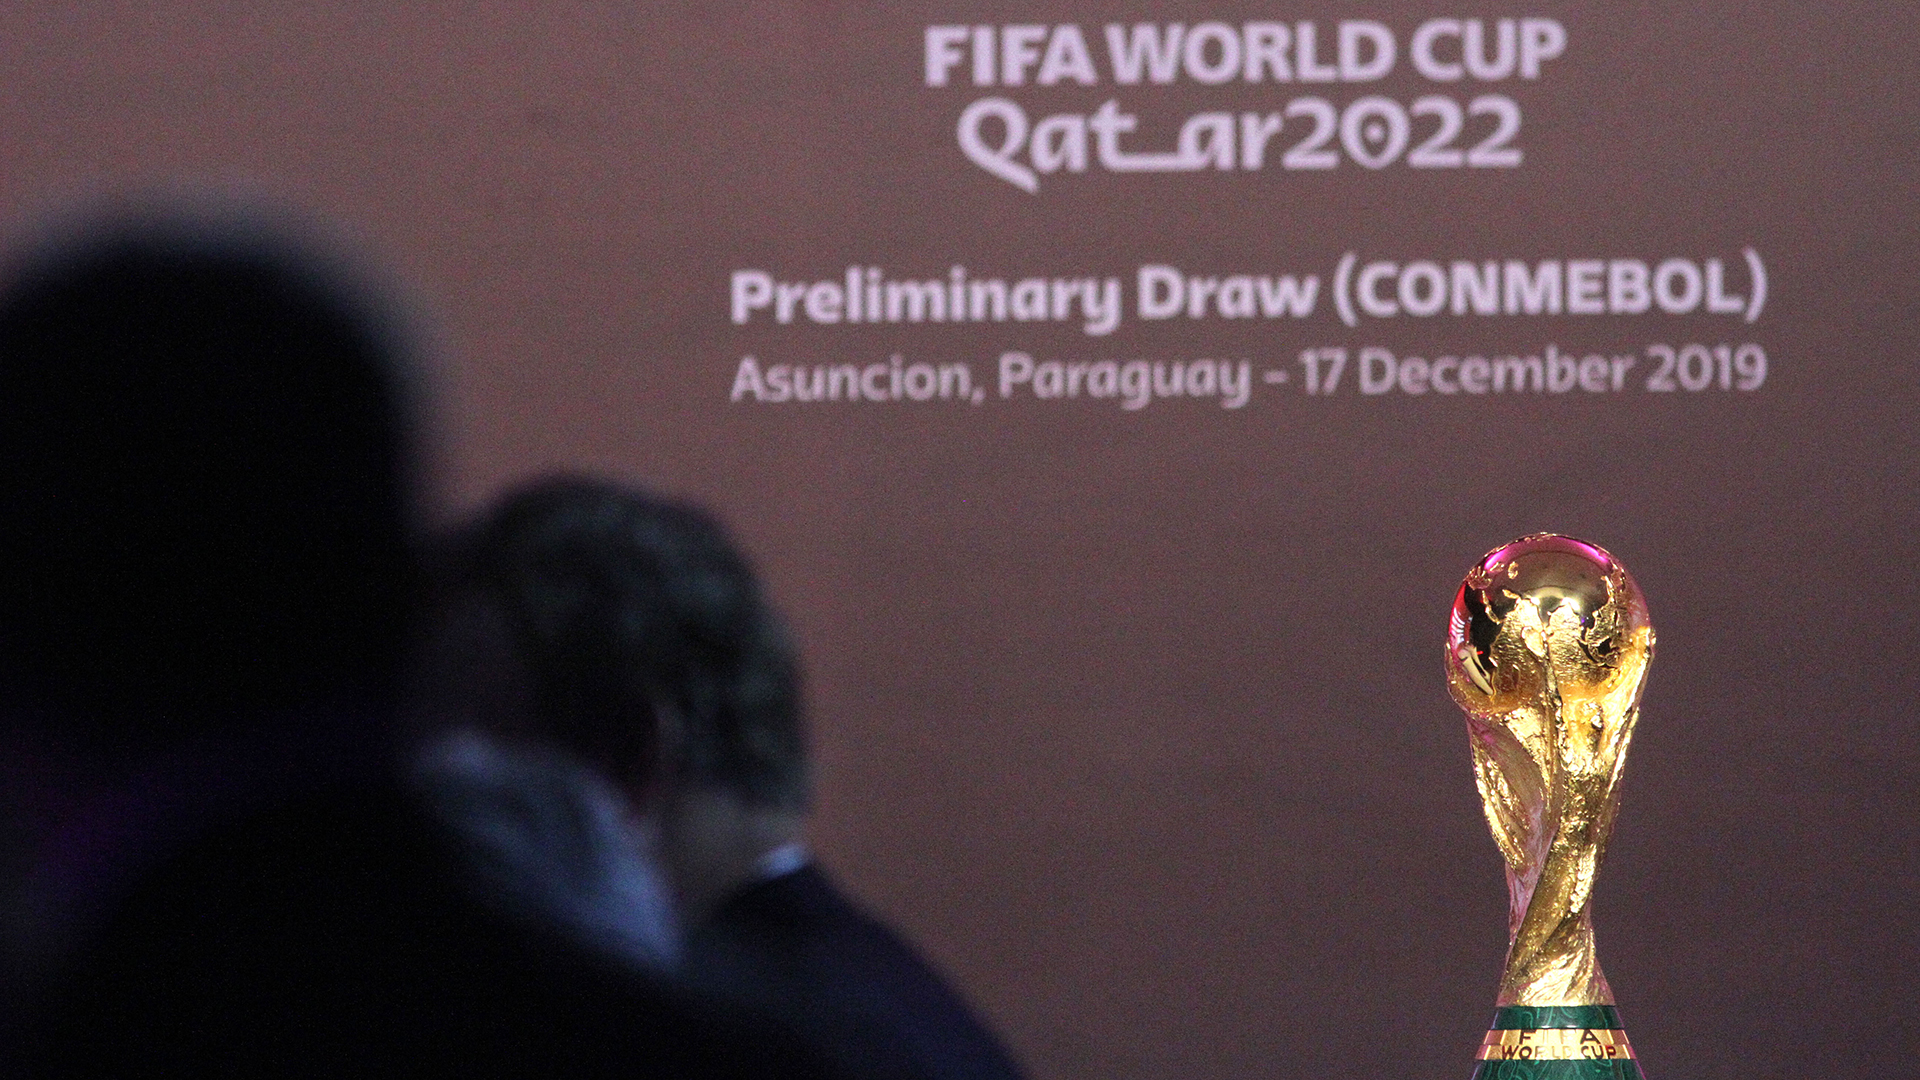 World Cup 2022 groups: England drawn with Poland, Belgium will face Wales in European qualifiers